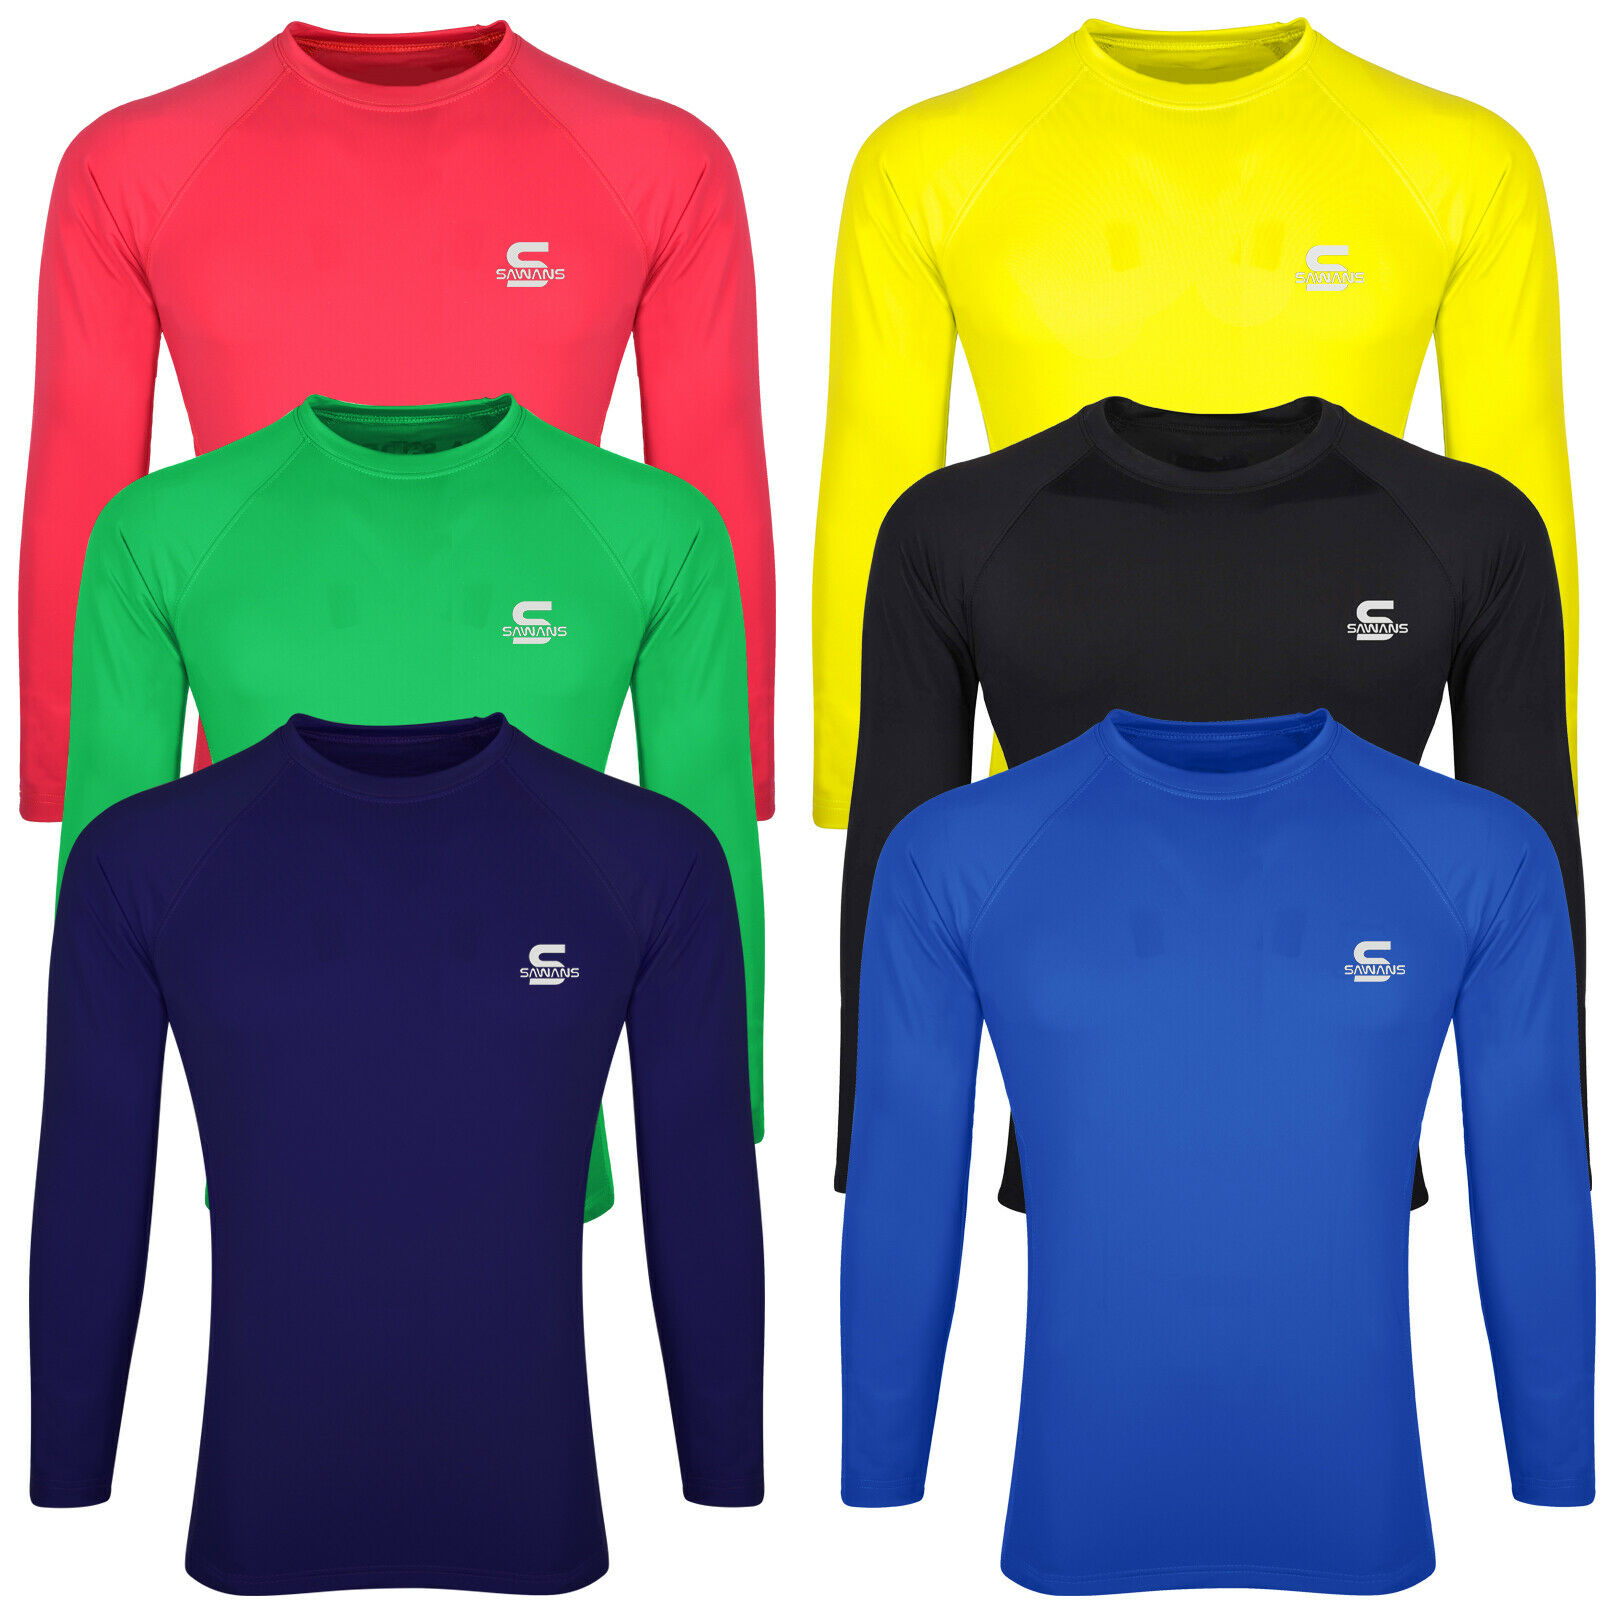 SAWANS® Base Layer Top Body Armour Compression Under Shirts Skins Gym Fit Sports